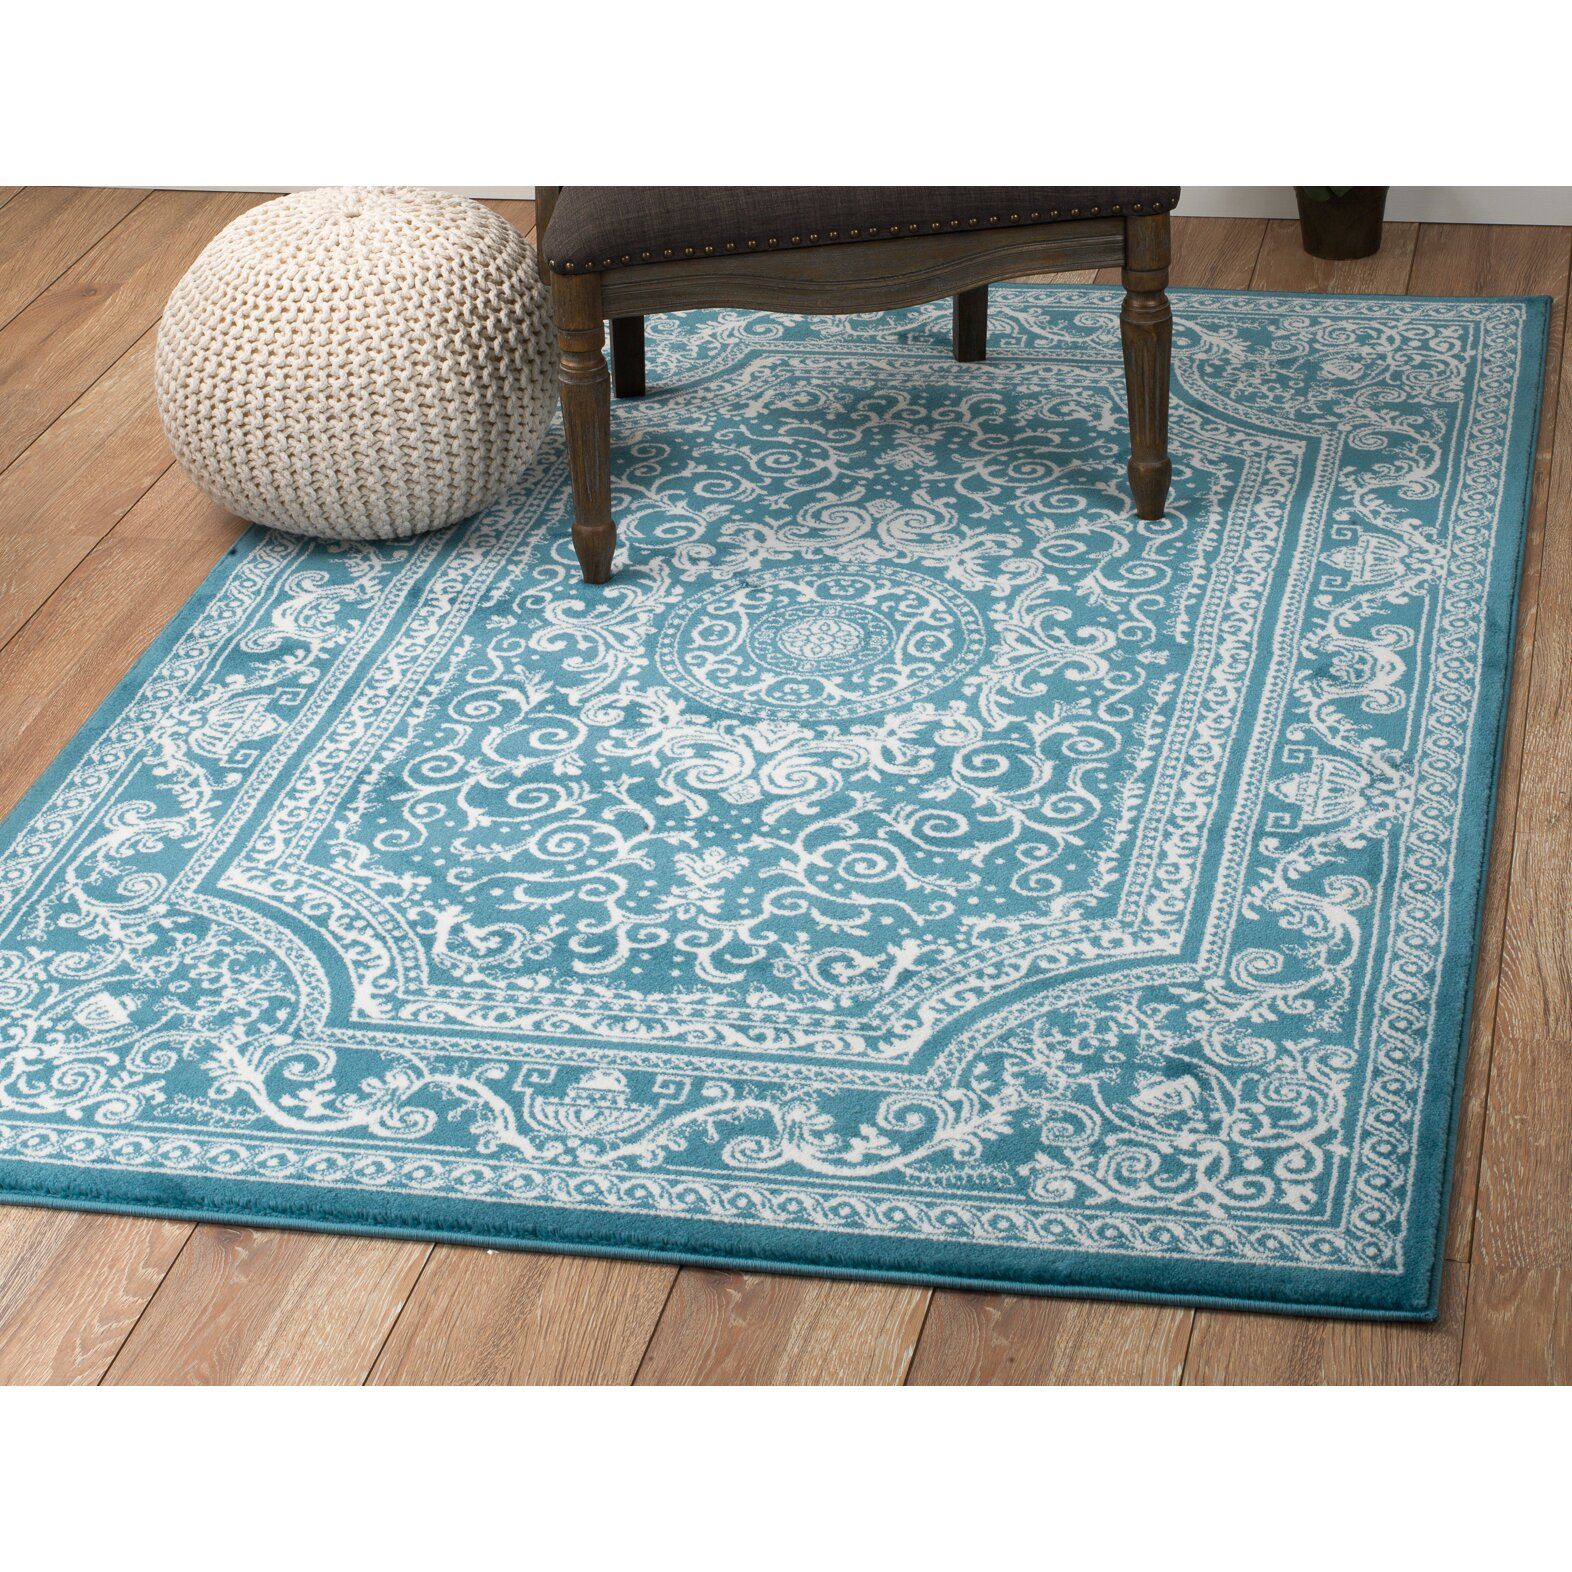 Rug And Decor Inc. Summit Blue Area Rug & Reviews